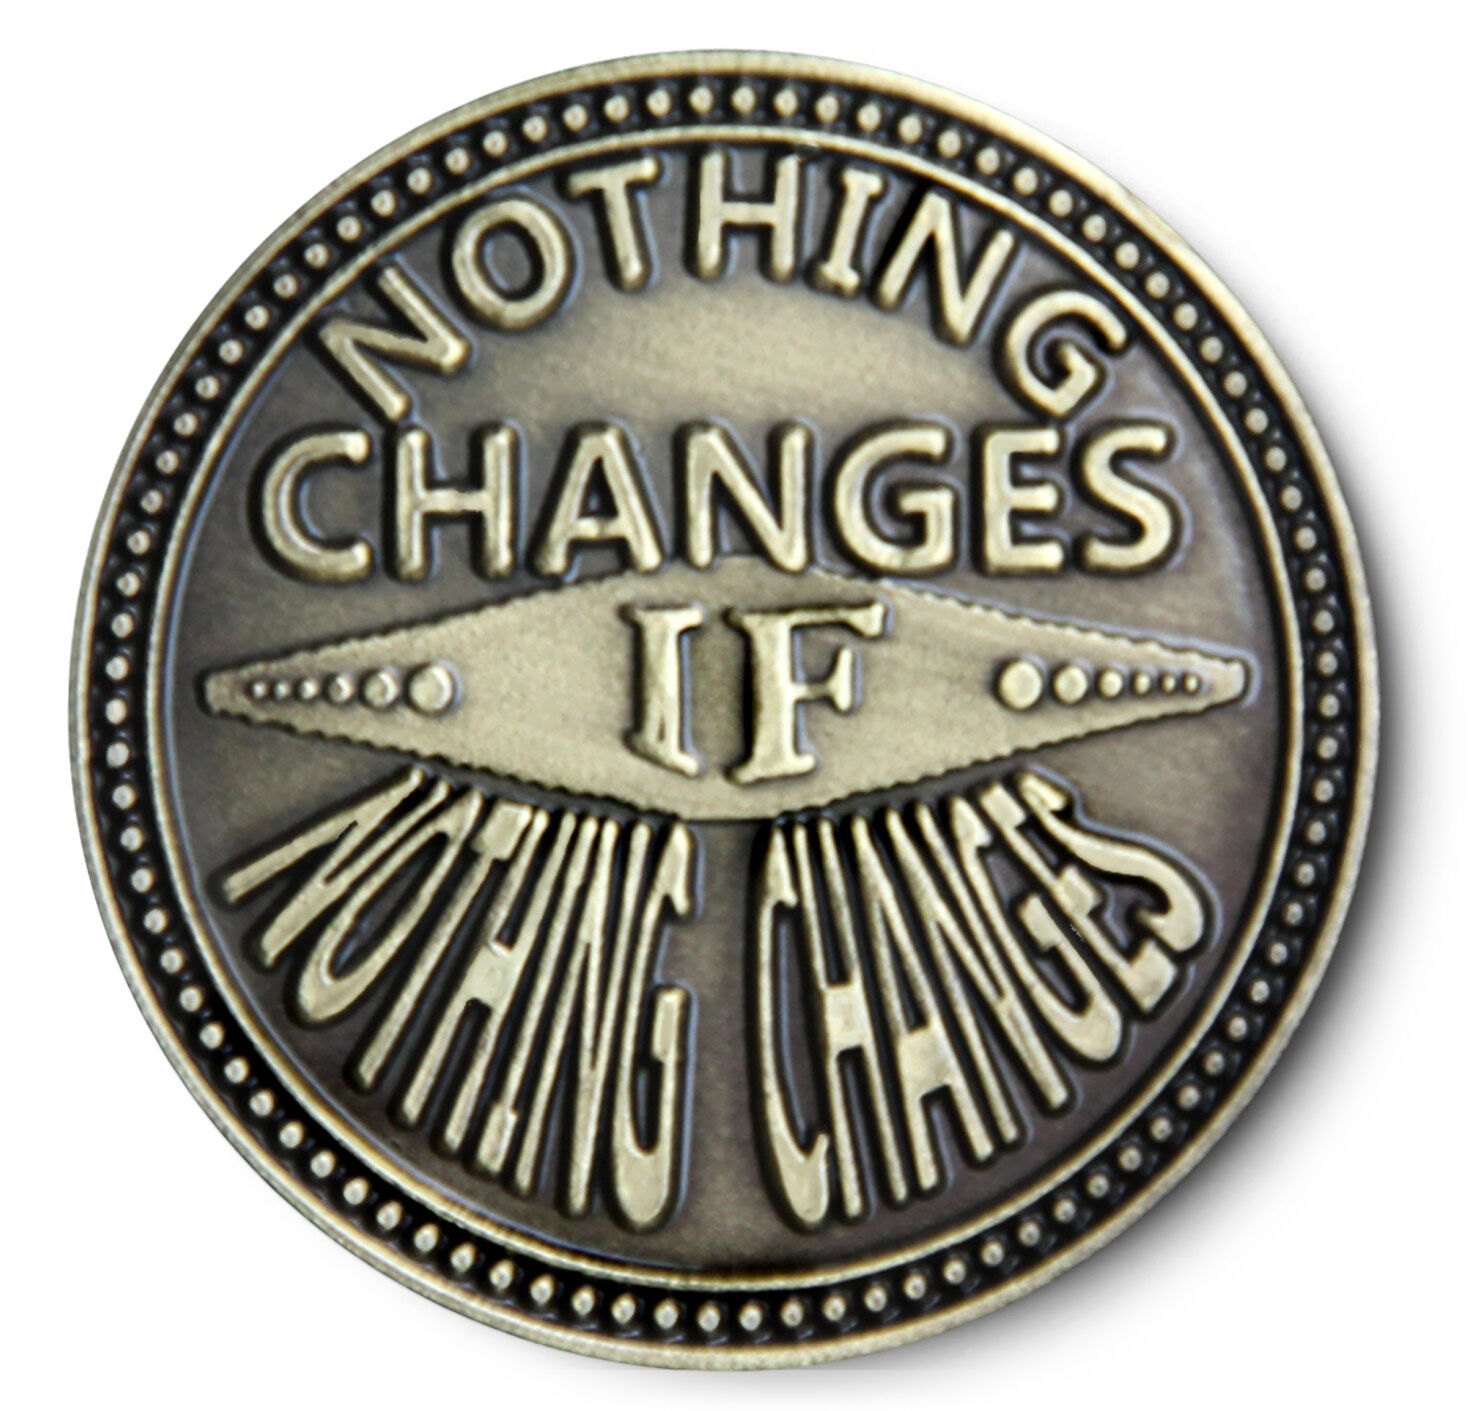 NOTHING CHANGES Antiqued Bronze  AA/NA/12 Step Recovery Program Coin /Token/Chip